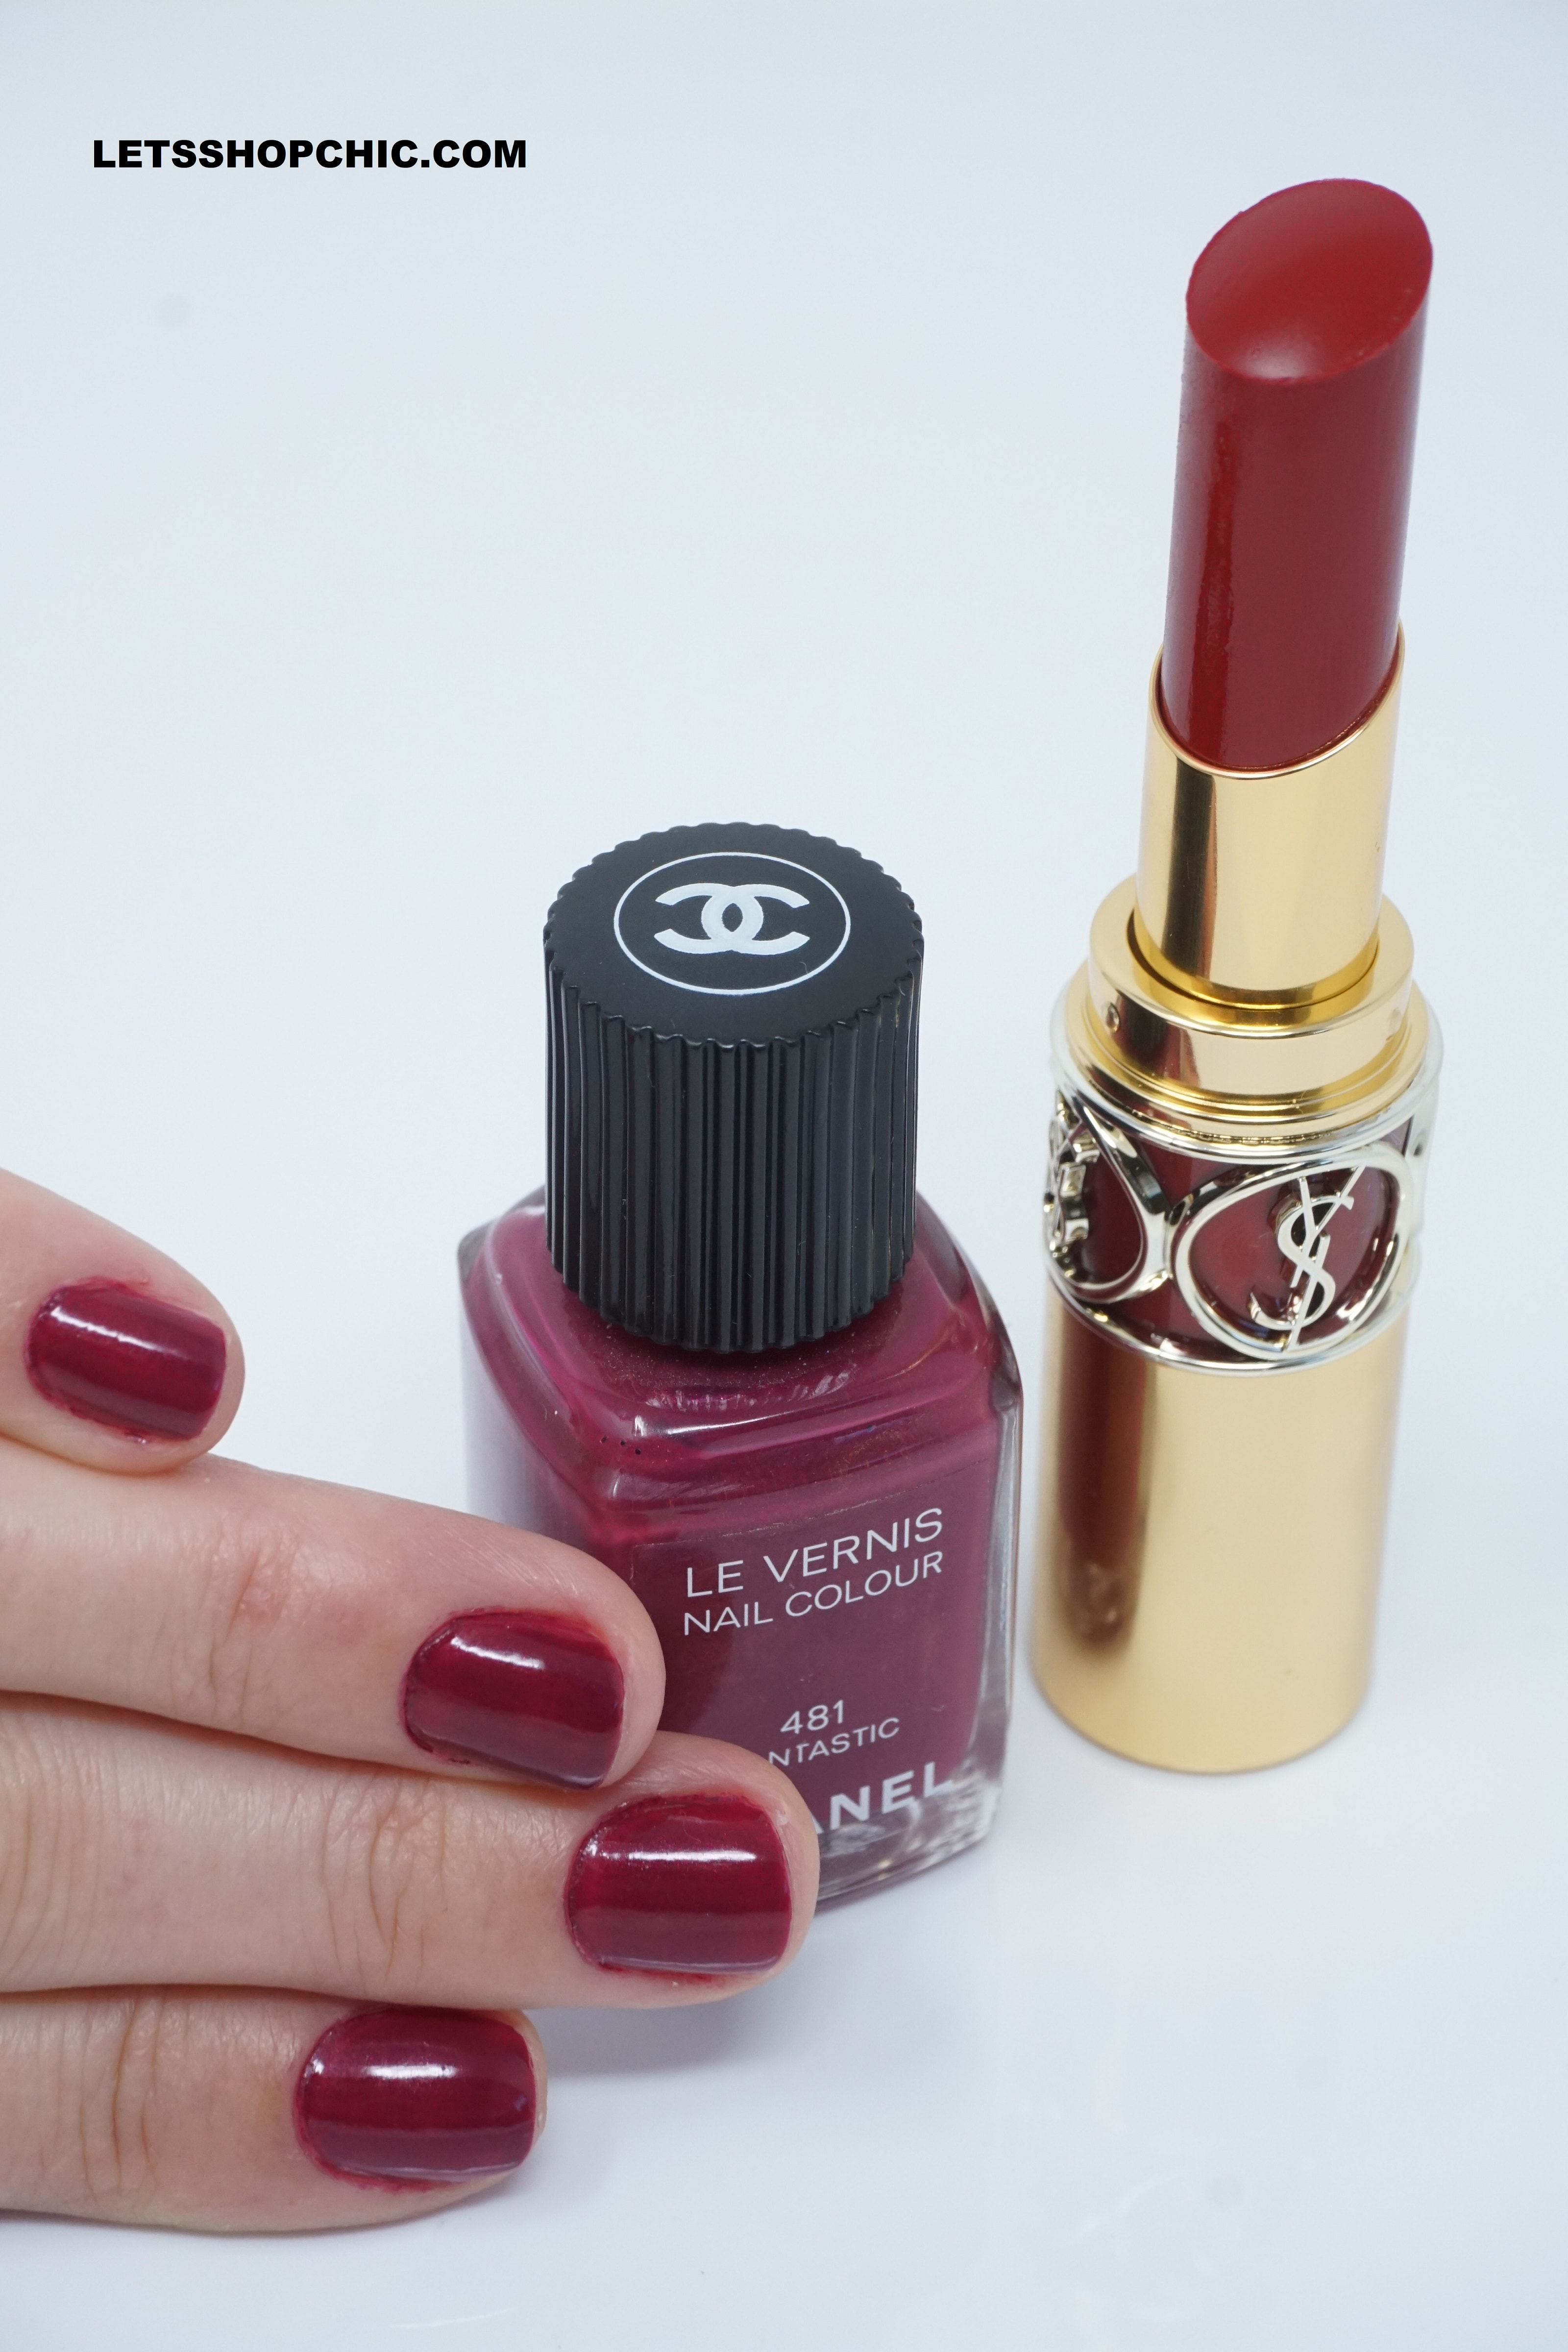 Chanel le vernis nail polish 481 fantastic and YSL Rouge Volupte Shine Lipstick 92 Rouge Caftan